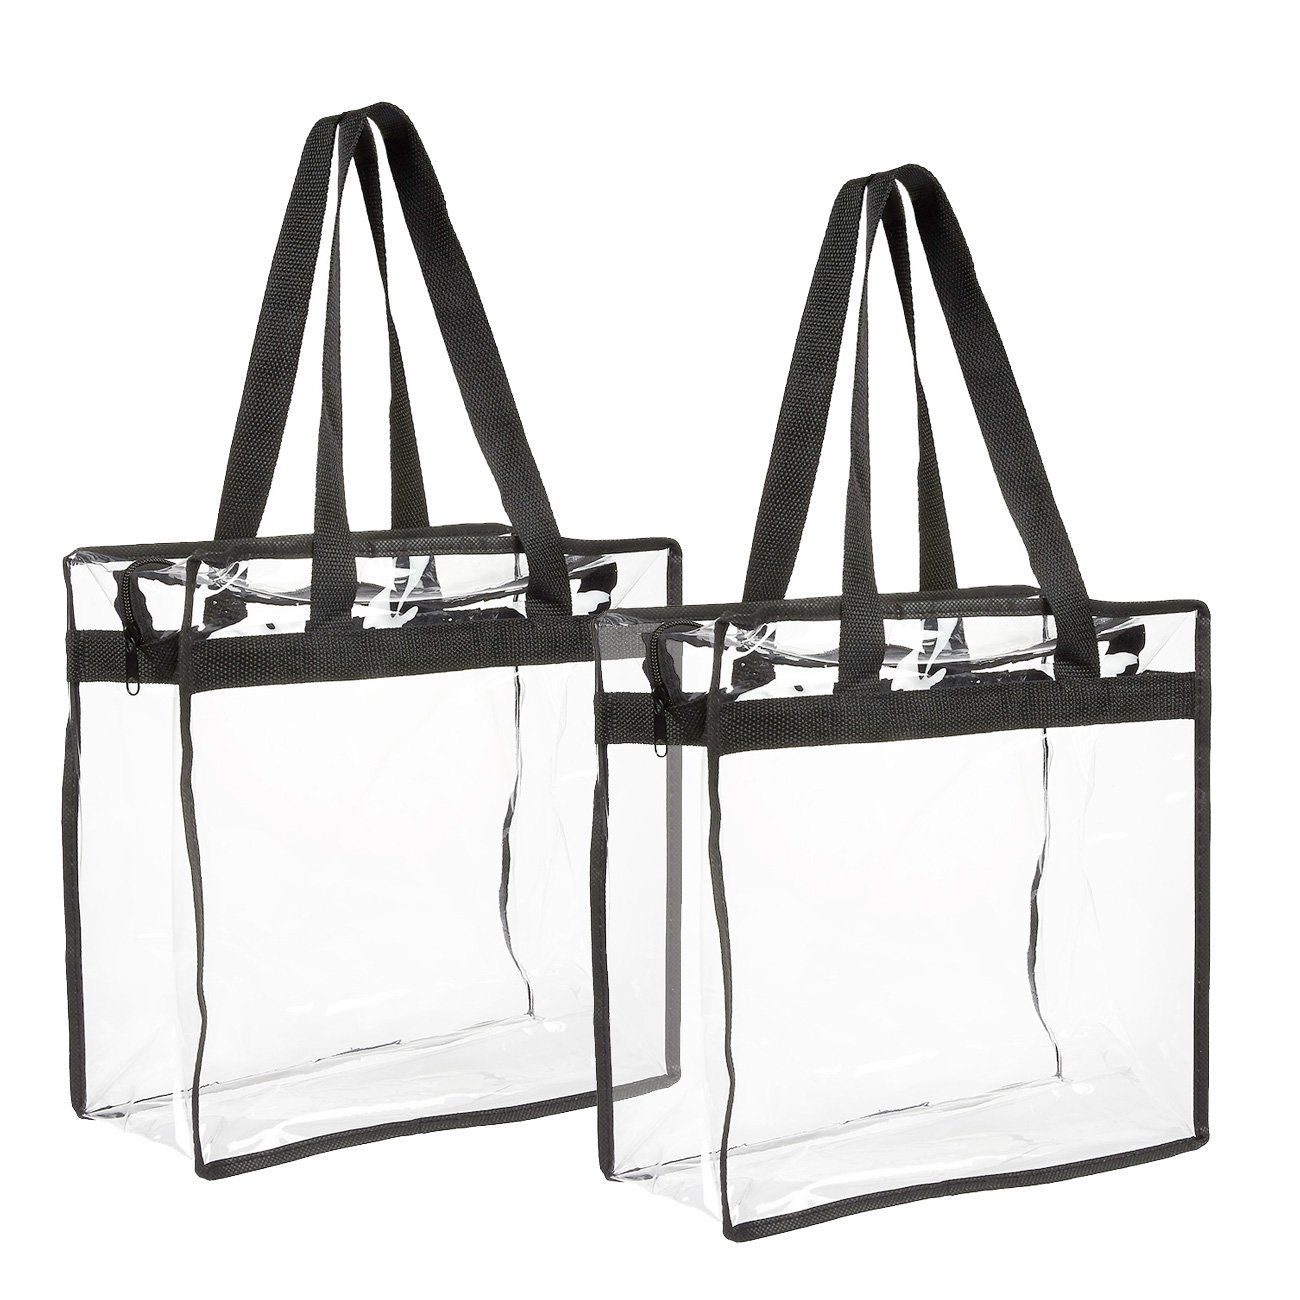 2-Pack Transparent Bag - Clear Tote Bag with Zipper - Stadium Approved 11.75